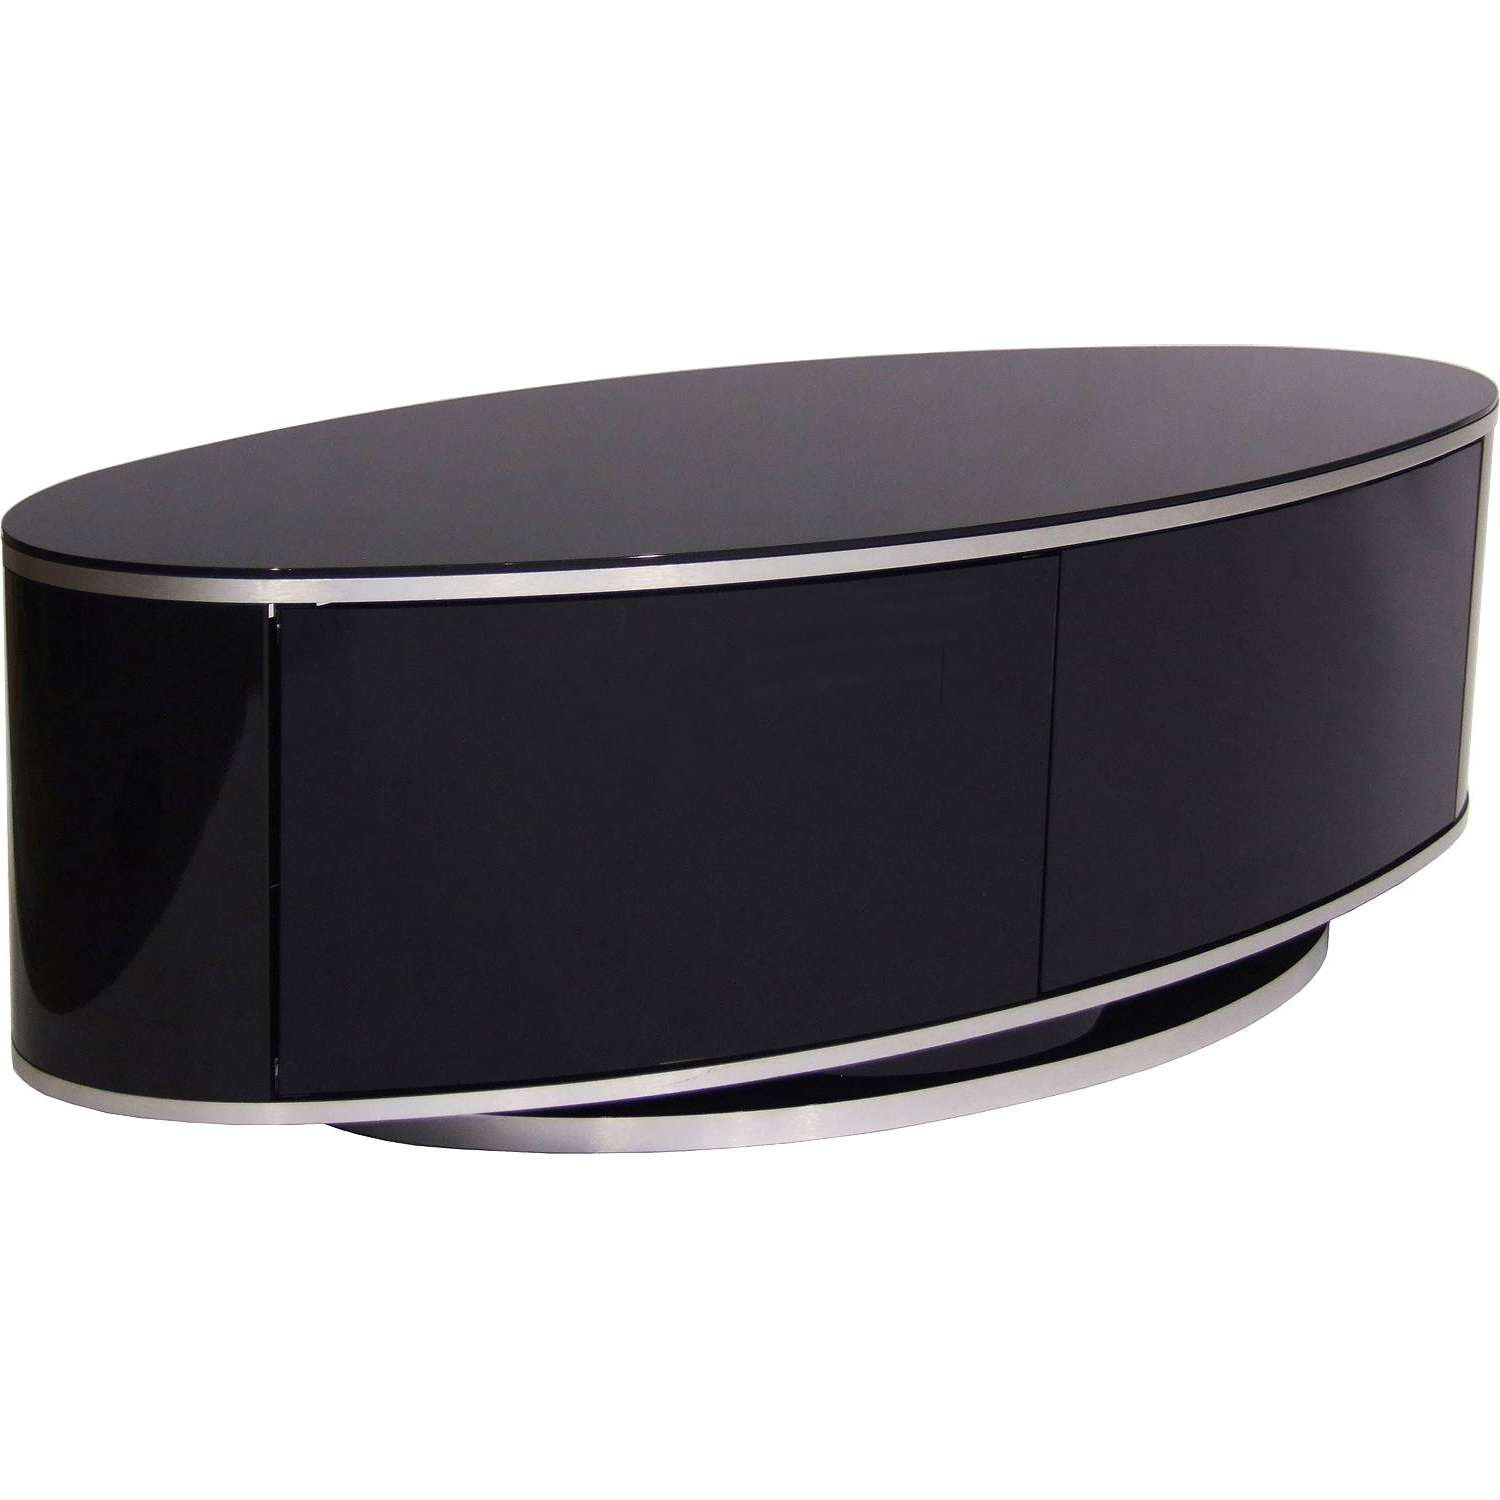 "Mda Designs Luna Av High Gloss Black Oval Tv Cabinet Up To 55"" Tvs In Oval Tv Stands (View 8 of 20)"